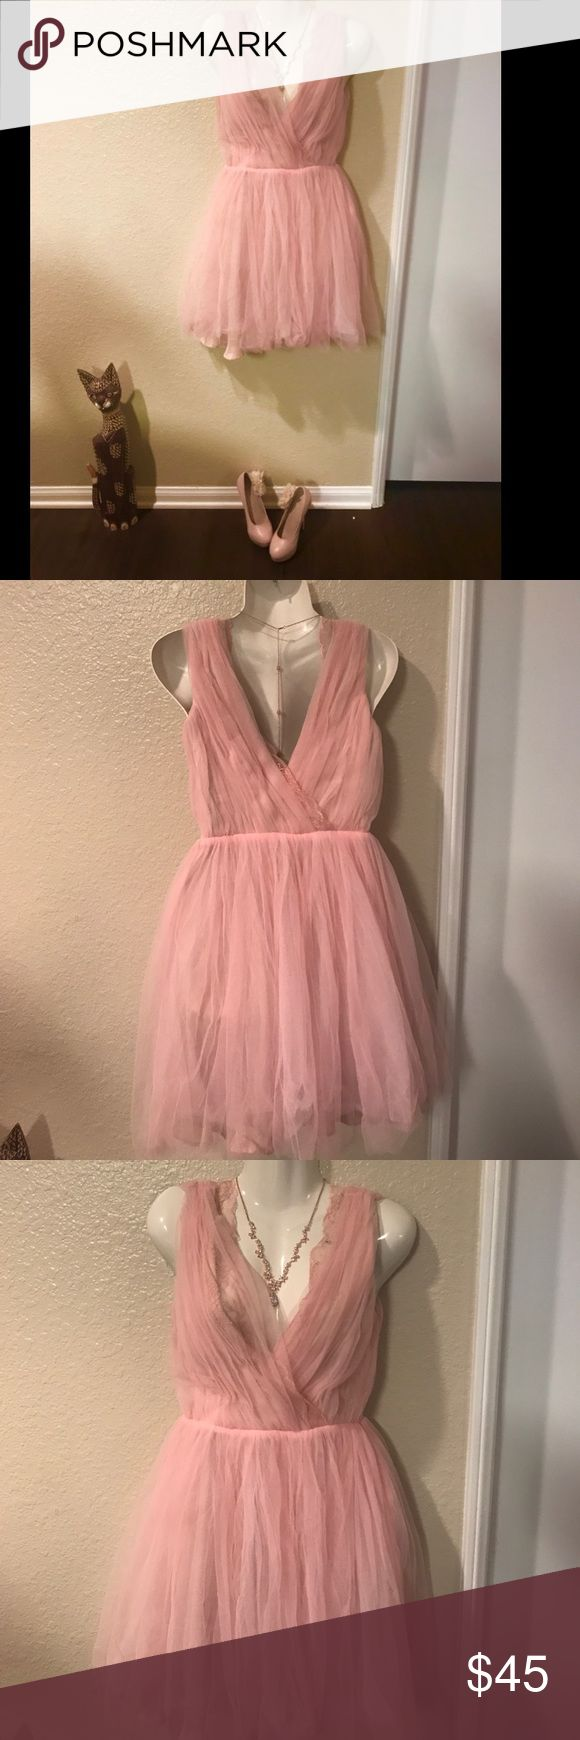 Zara blush/pink tulle sleeveless lace dress. Zara size small. Has zipper on side. Blush pink tulle dress with lace on the top. Think Carrie Bradshaw. Bought and wore once. Probably needs to be ironed but other than that it's in good conditioned. Sale is for dress only. Zara Dresses Midi